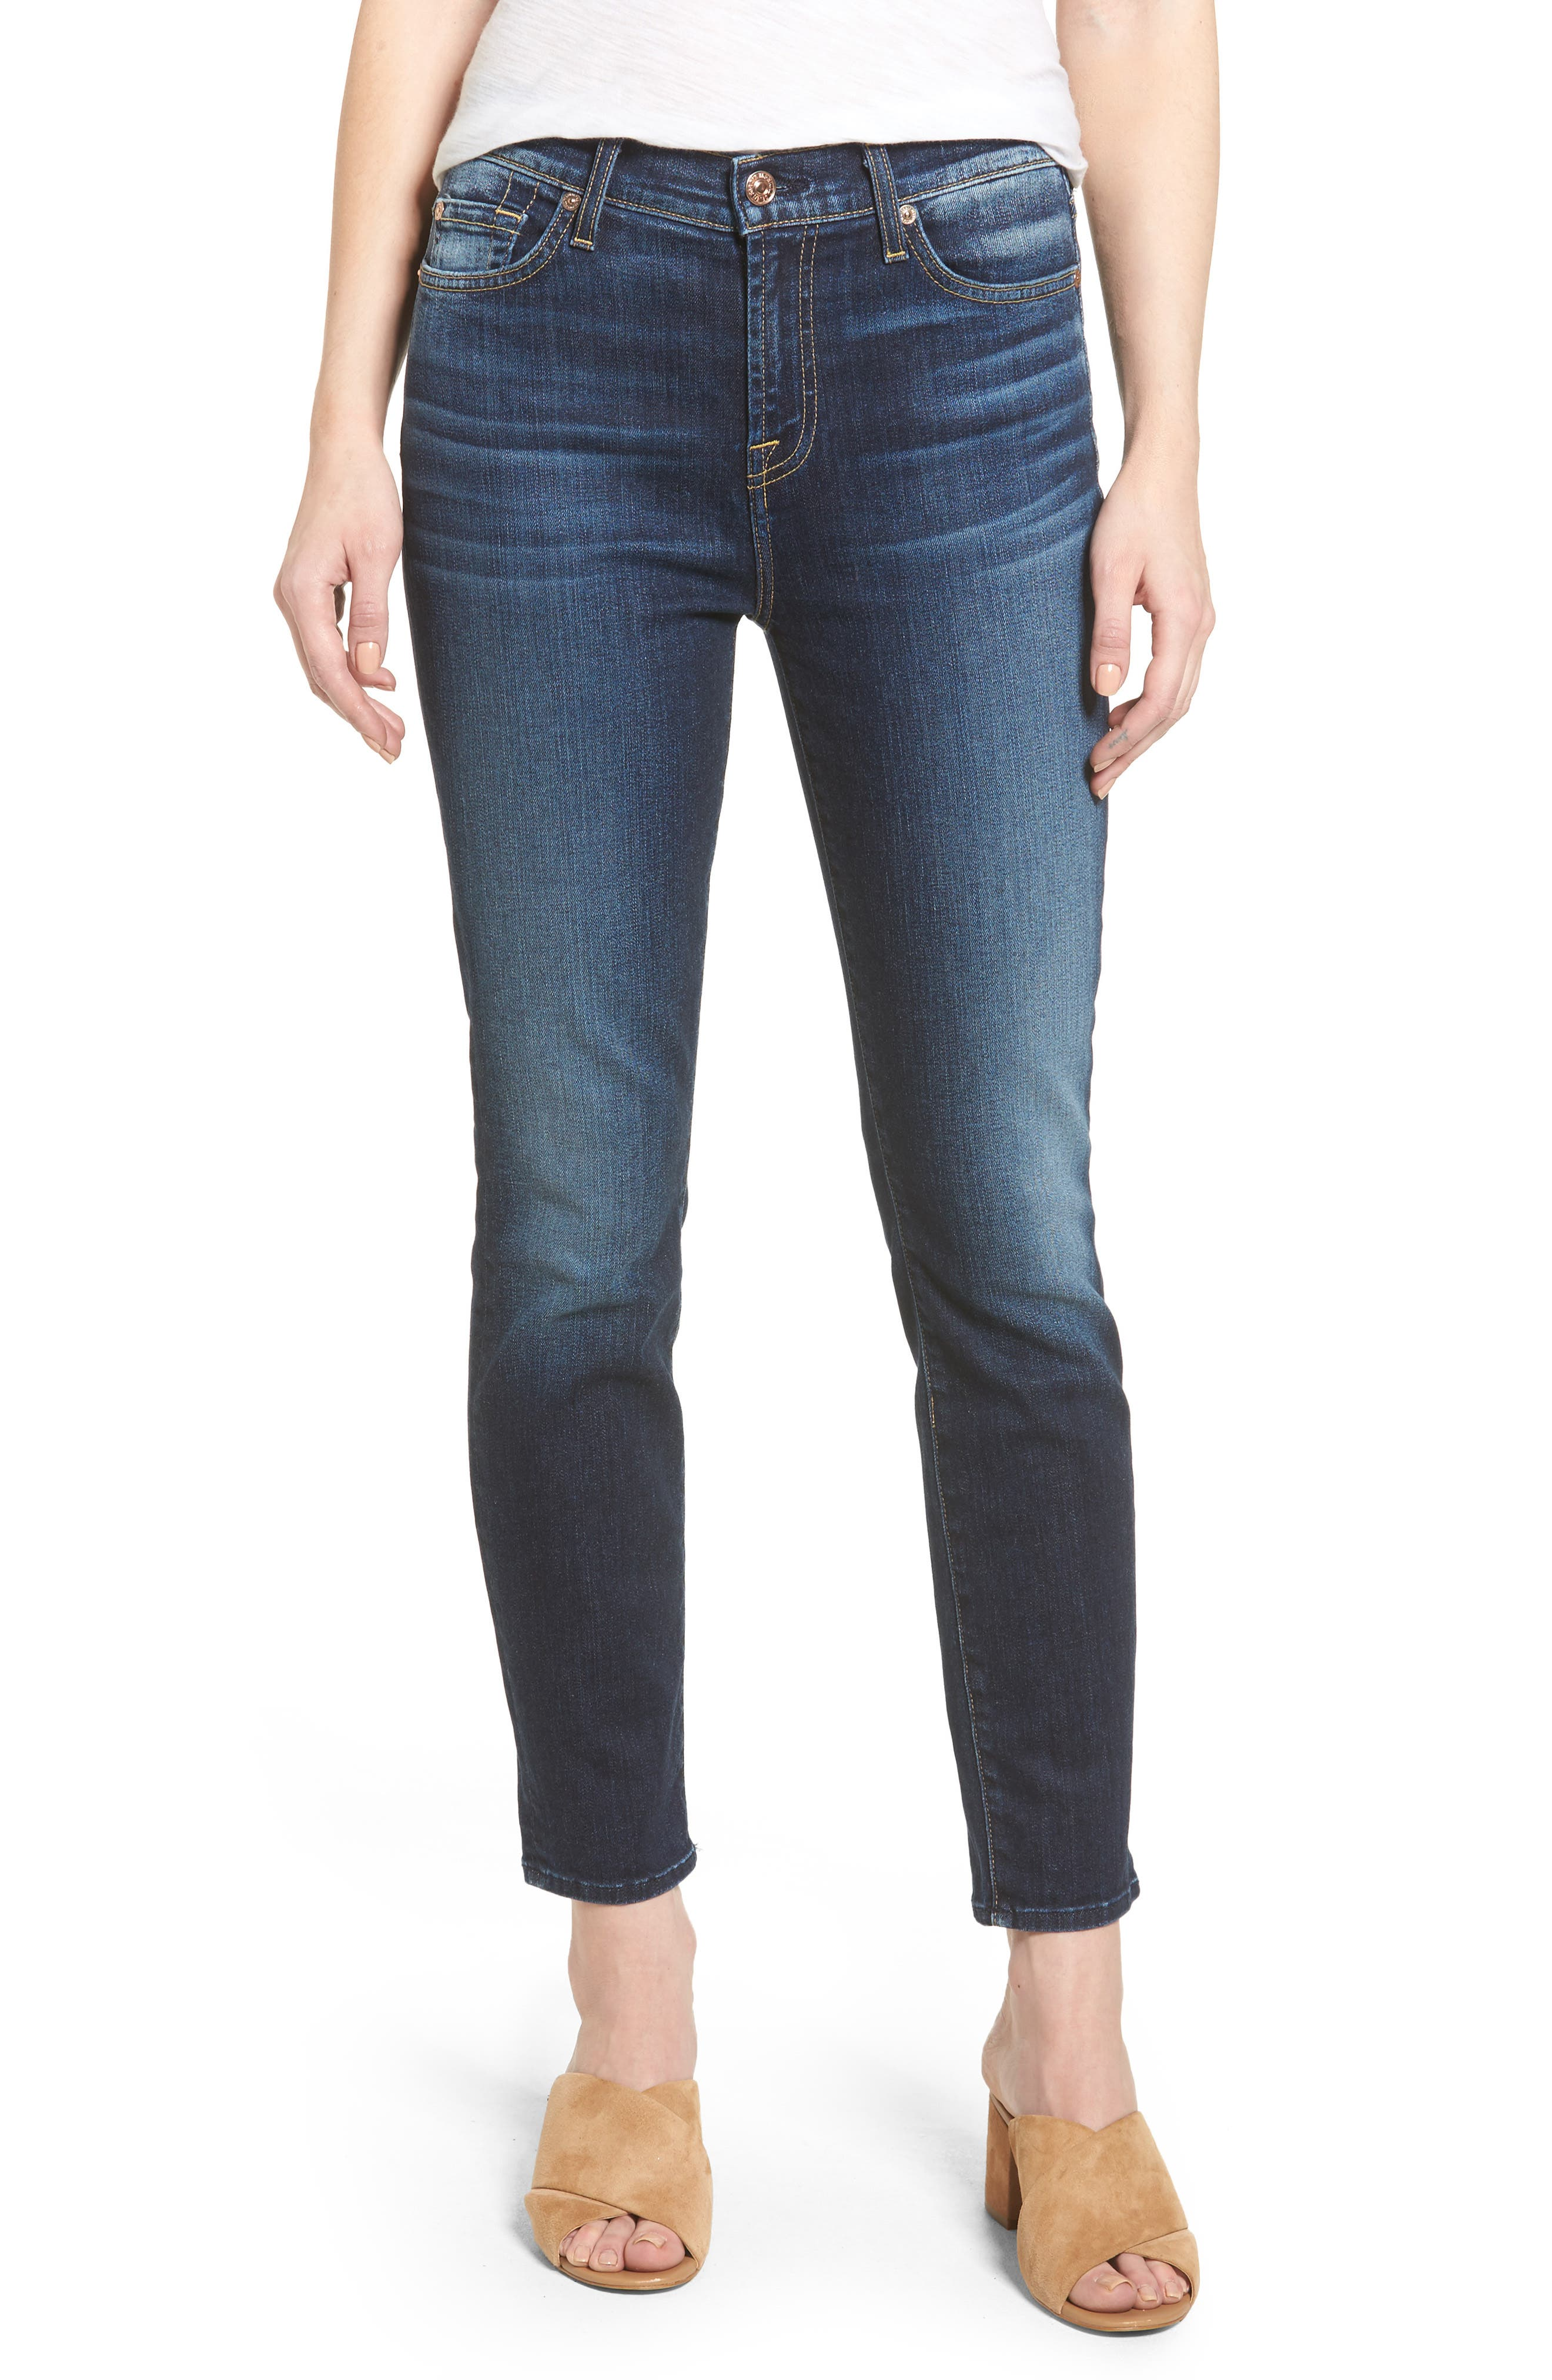 Seven7 Roxanne High Waist Ankle Jeans,                         Main,                         color, Aggressive Madison Ave